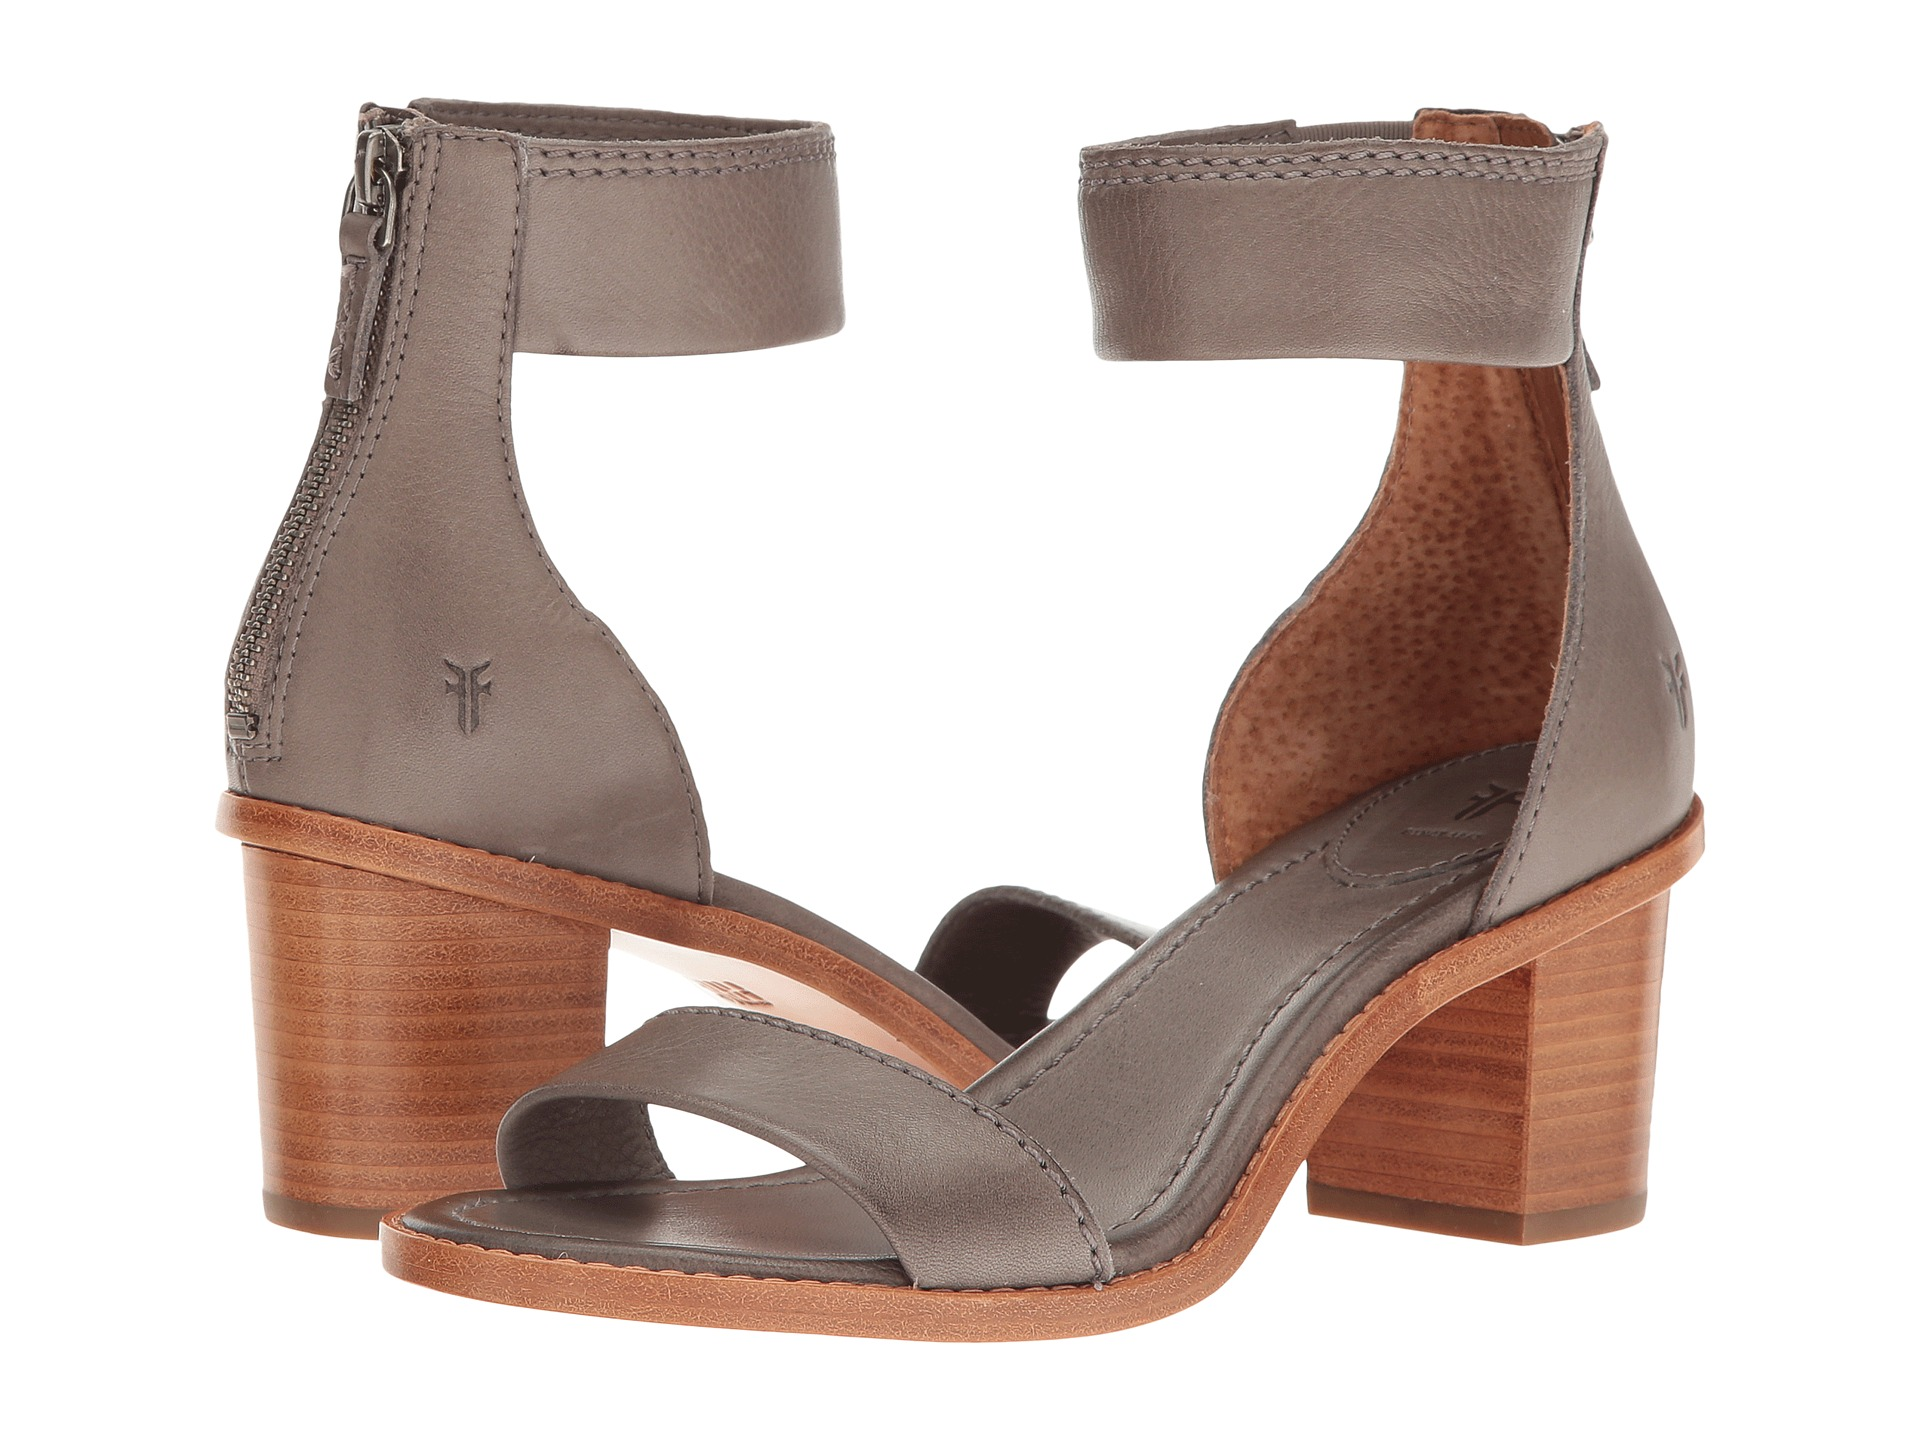 Frye Brielle Back Zip At Zappos Com